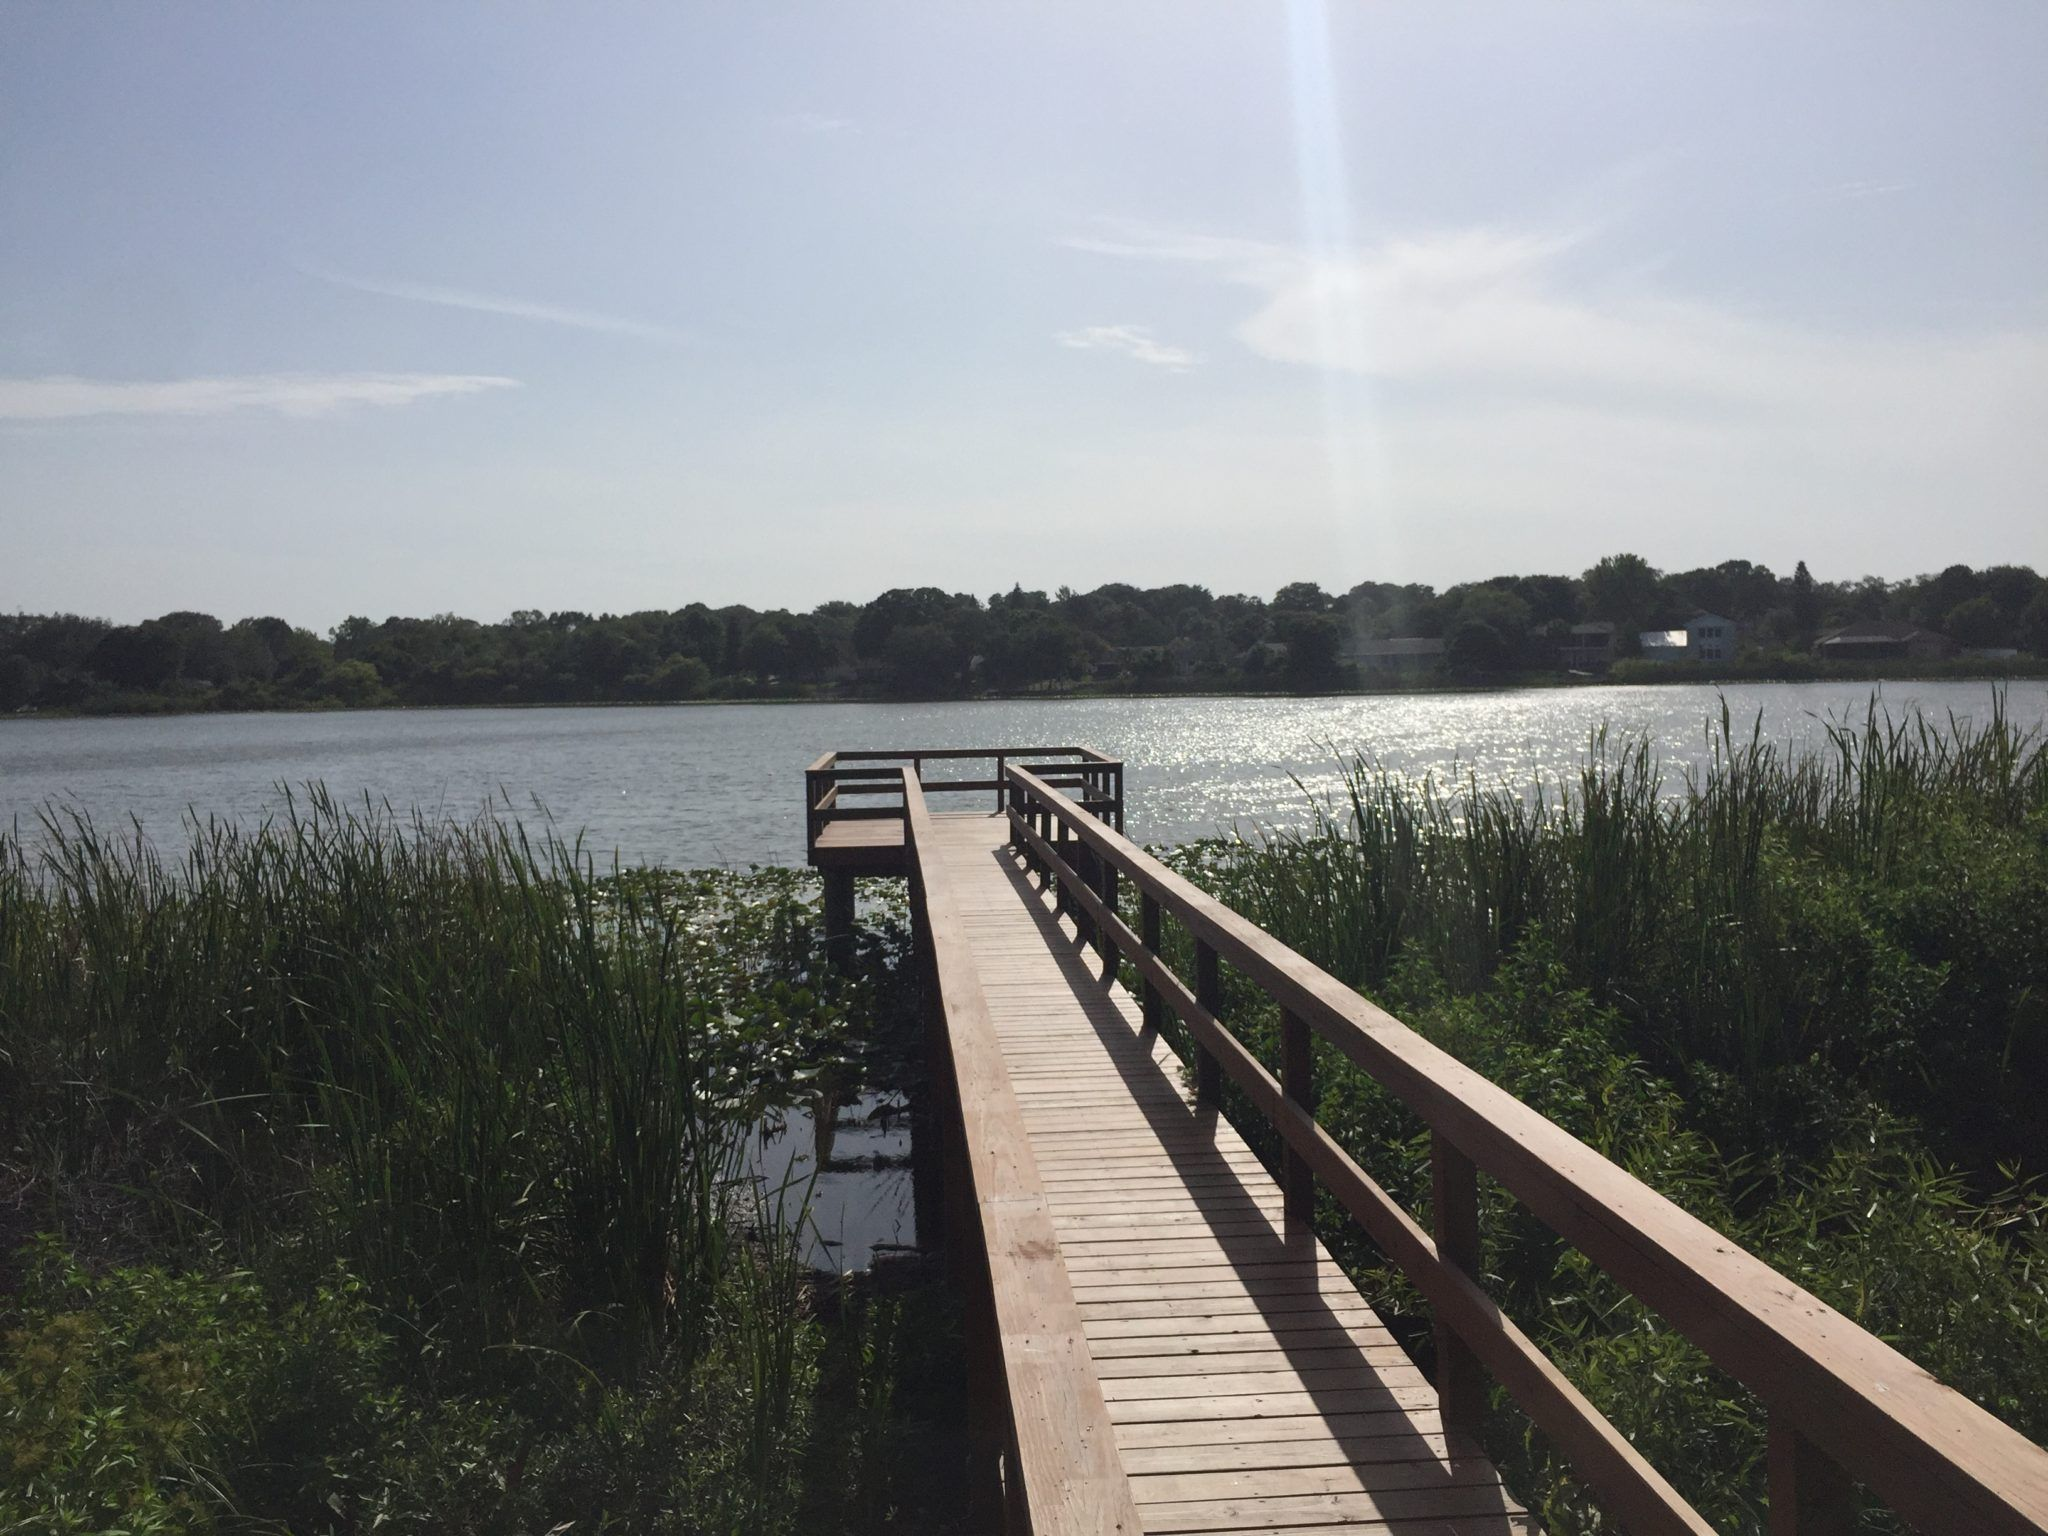 A commercial timber boardwalk that runs to a dock head over the lake